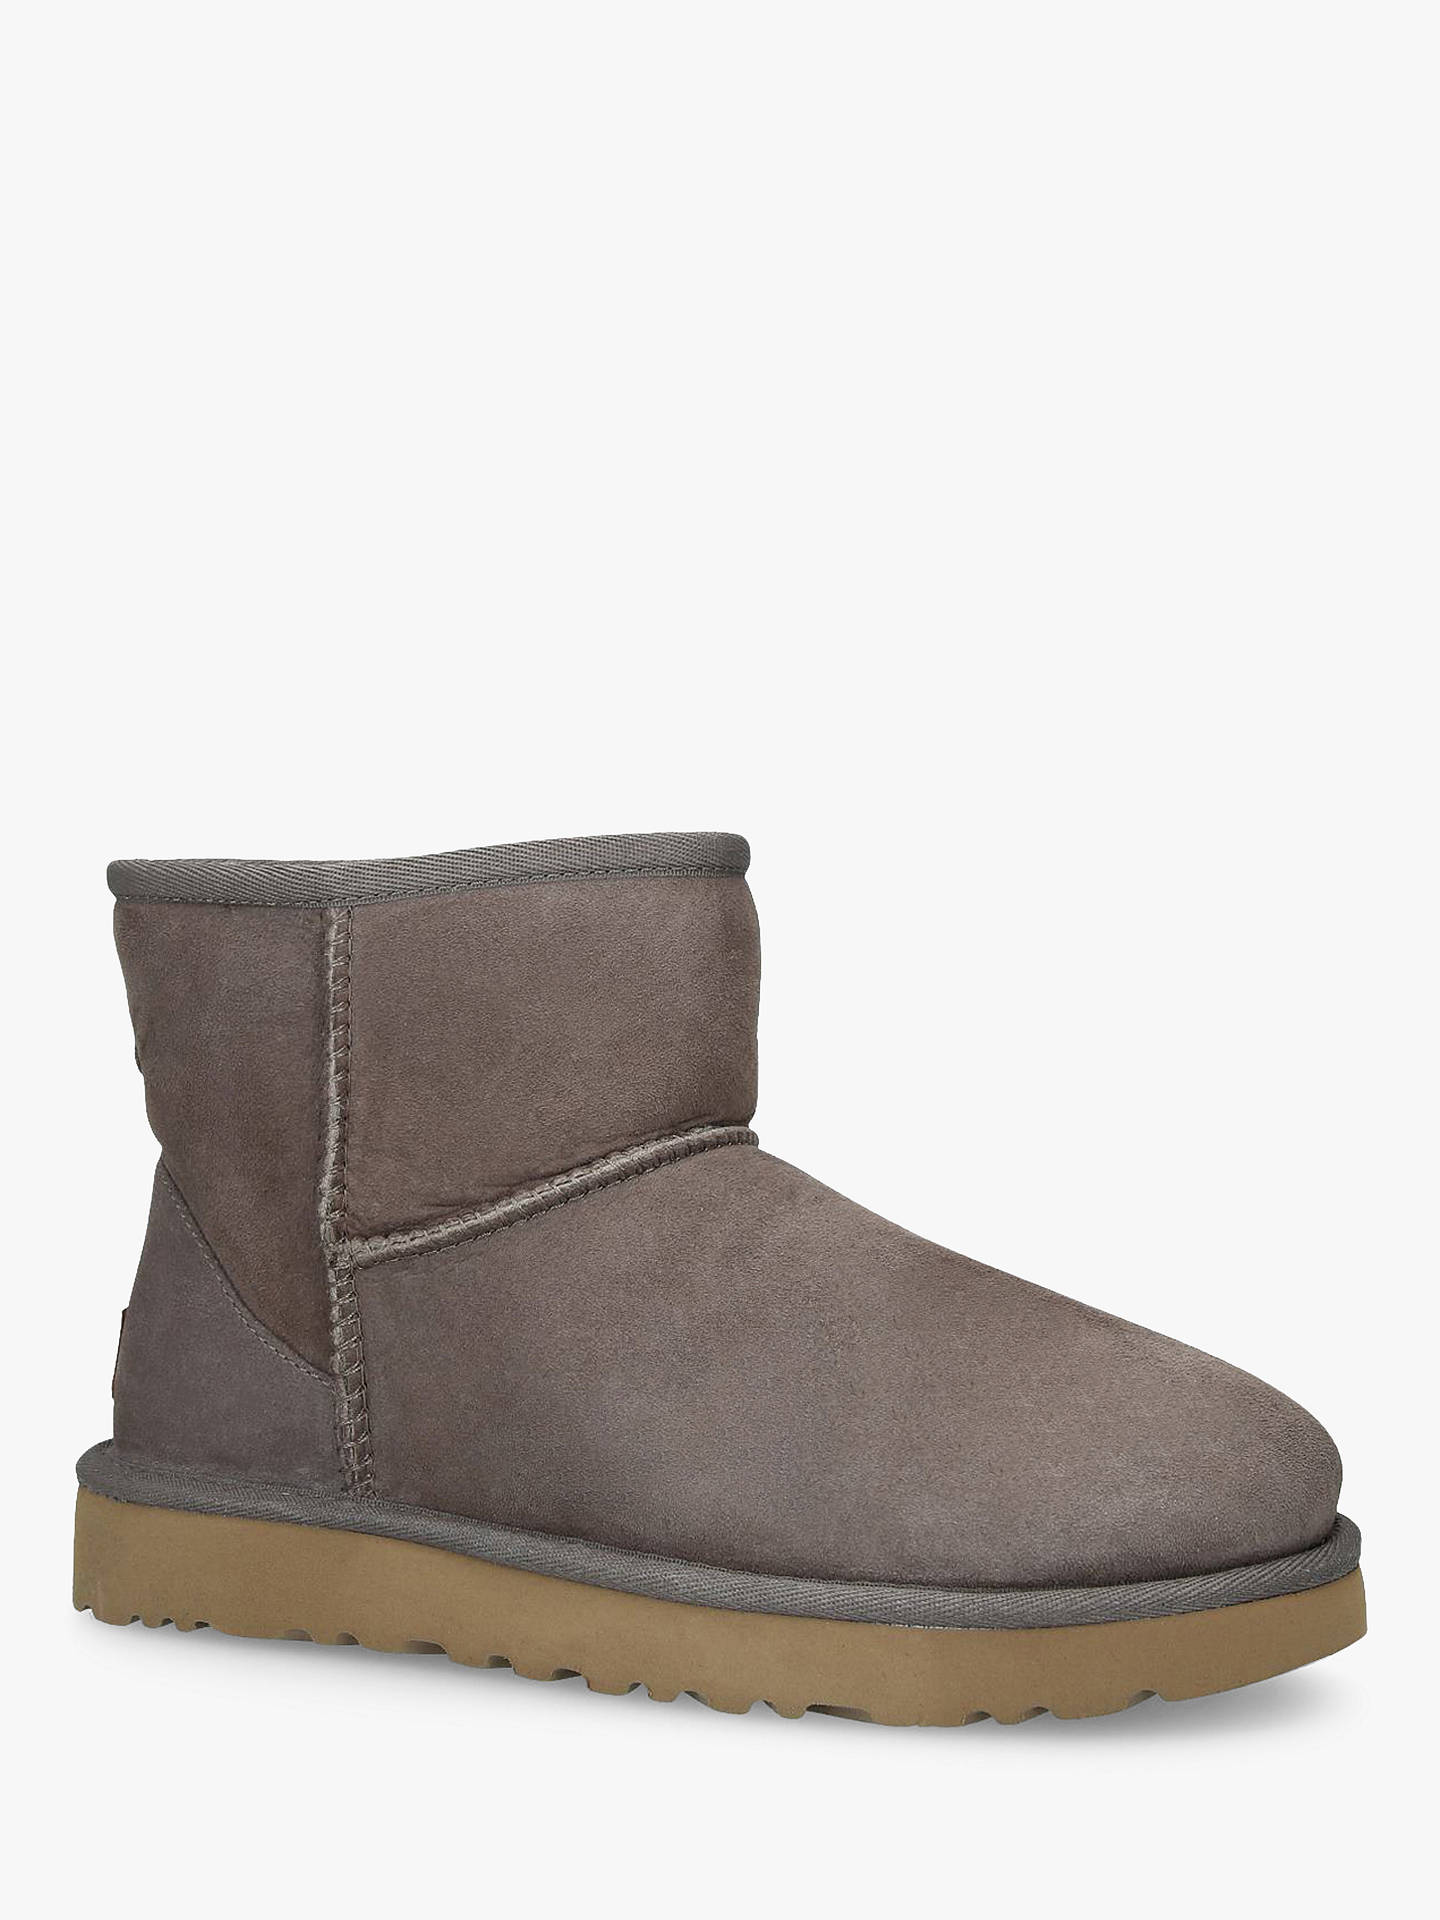 f8632b84651 UGG Classic II Mini Sheepskin Ankle Boots, Natural Taupe